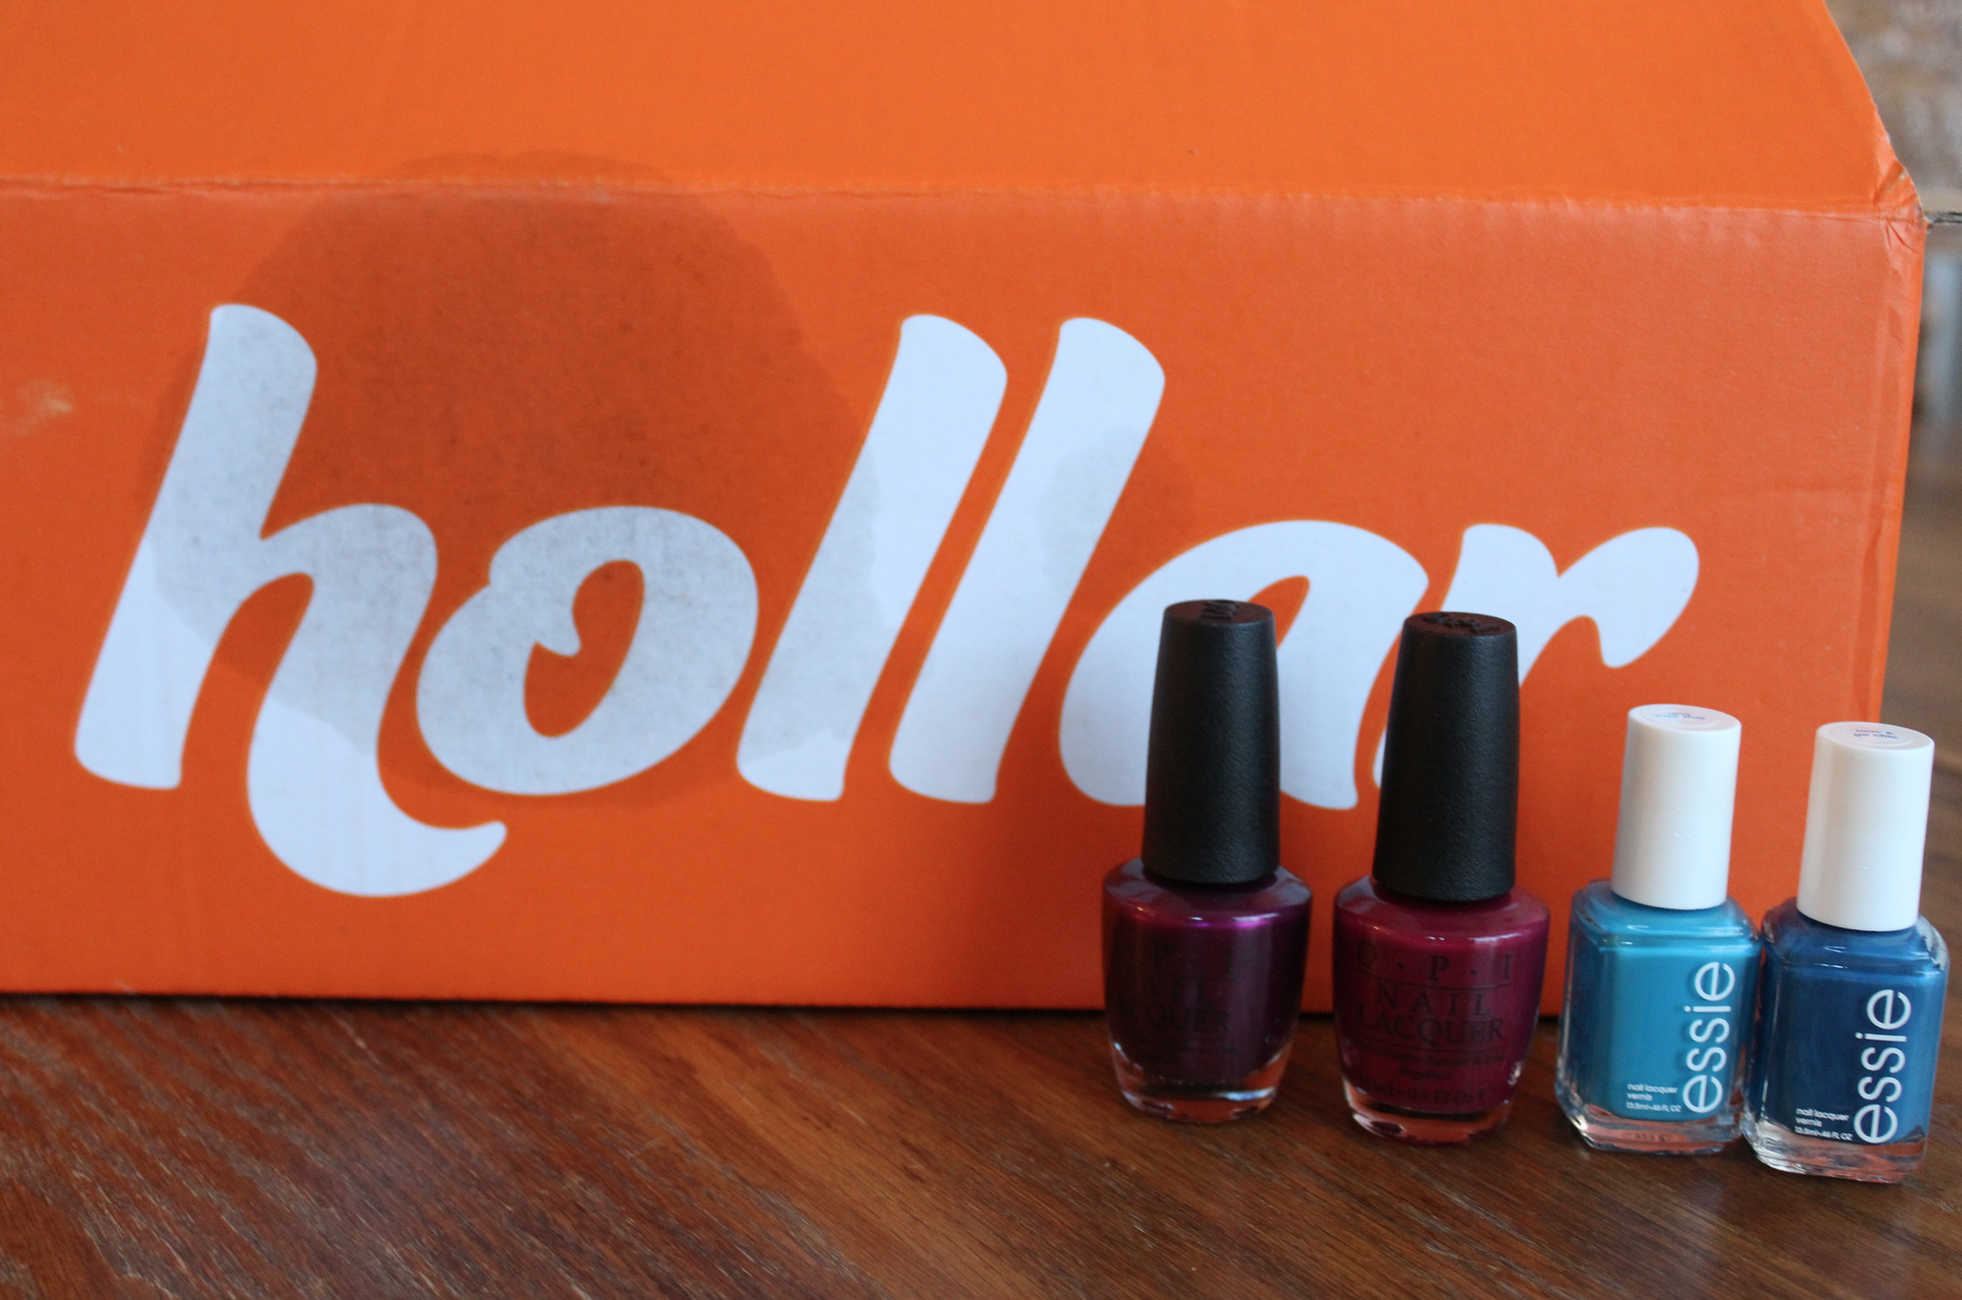 My Completely Honest Review of Hollar